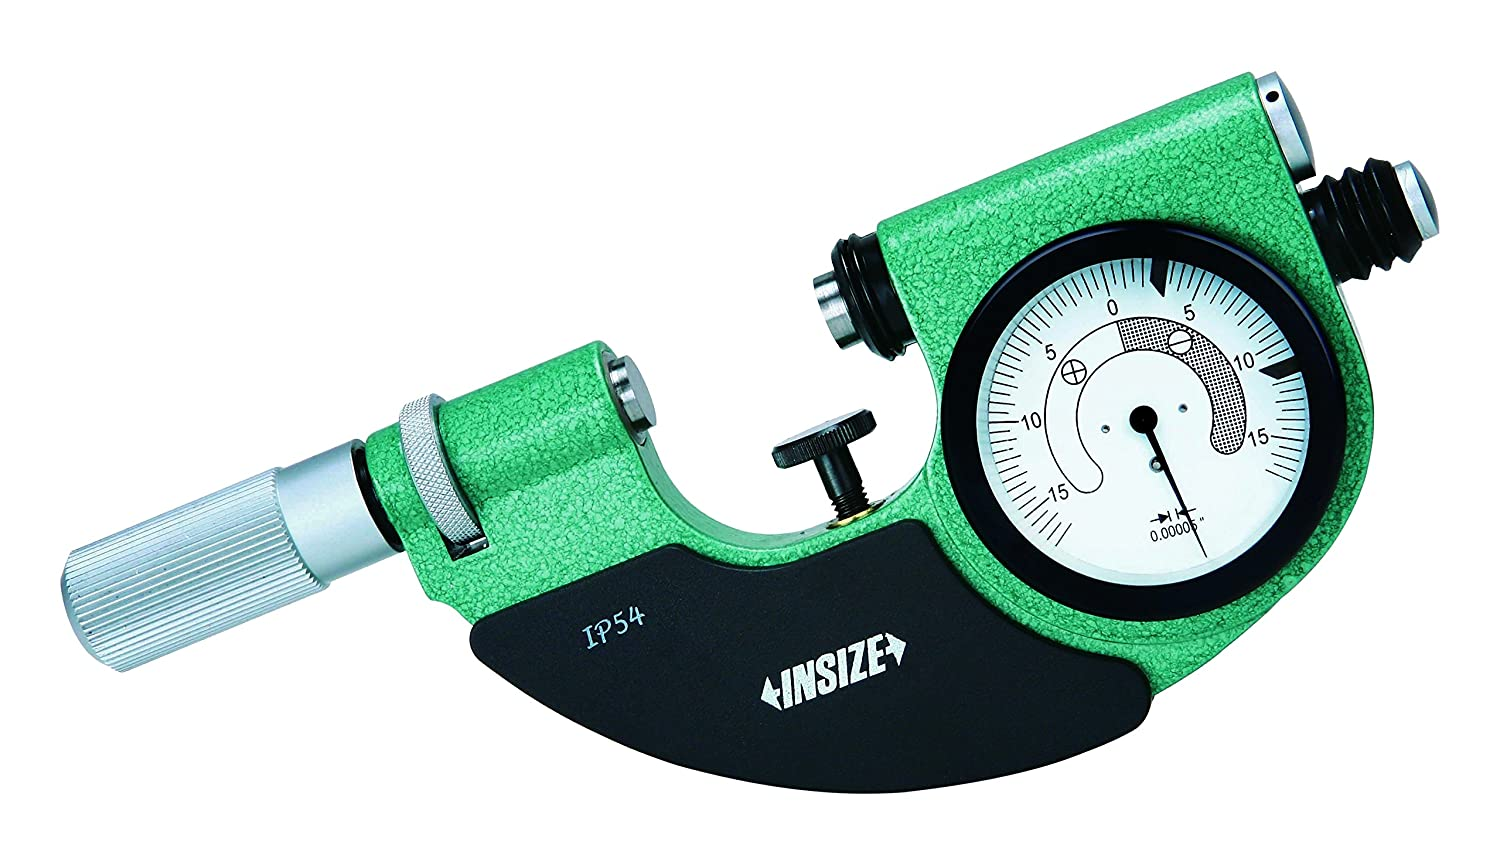 INSIZE 3334-4 Dial Snap Gage New item NEW before selling ☆ 0.00005